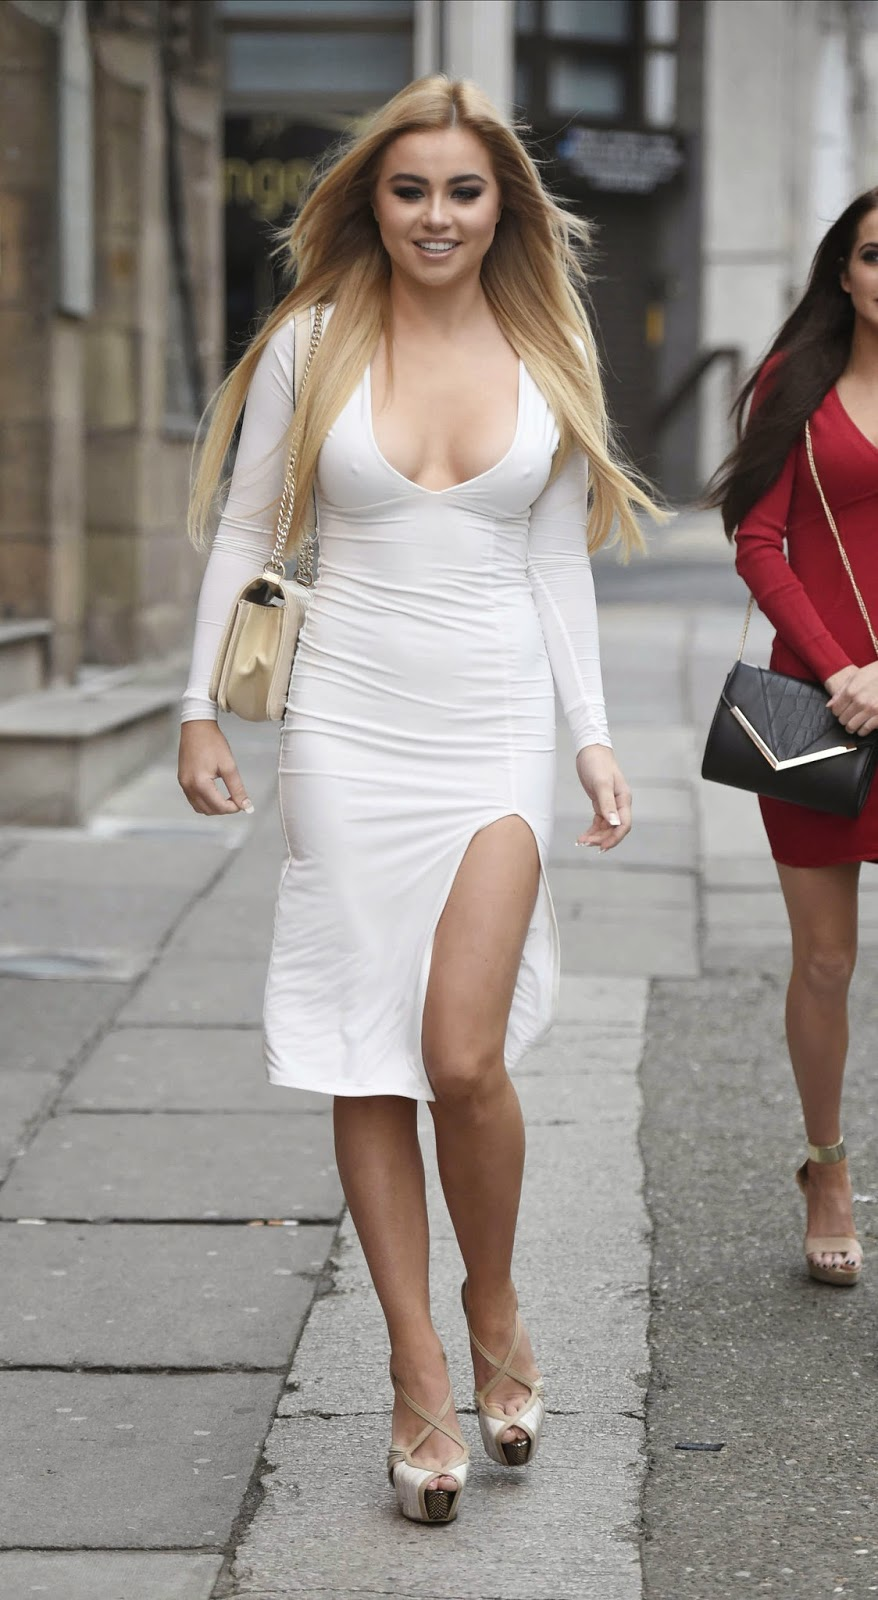 Melissa Reeves in a figure hugging white dress at the Bellissimo Brunch Club in Liverpool